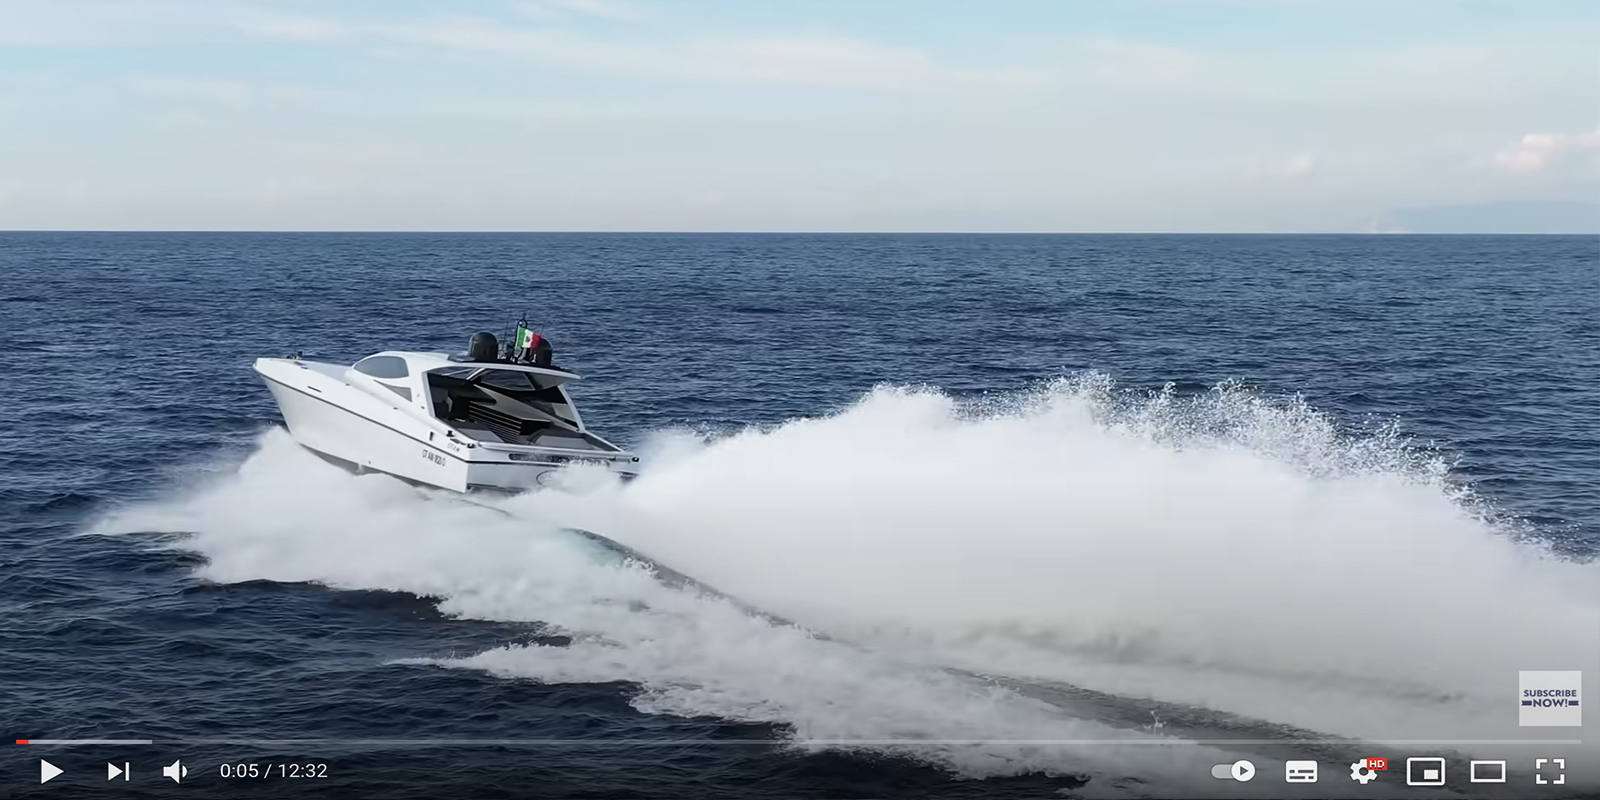 OTAM 65 HT - Performance Yacht Exclusive Review and Tour - The Boat Show